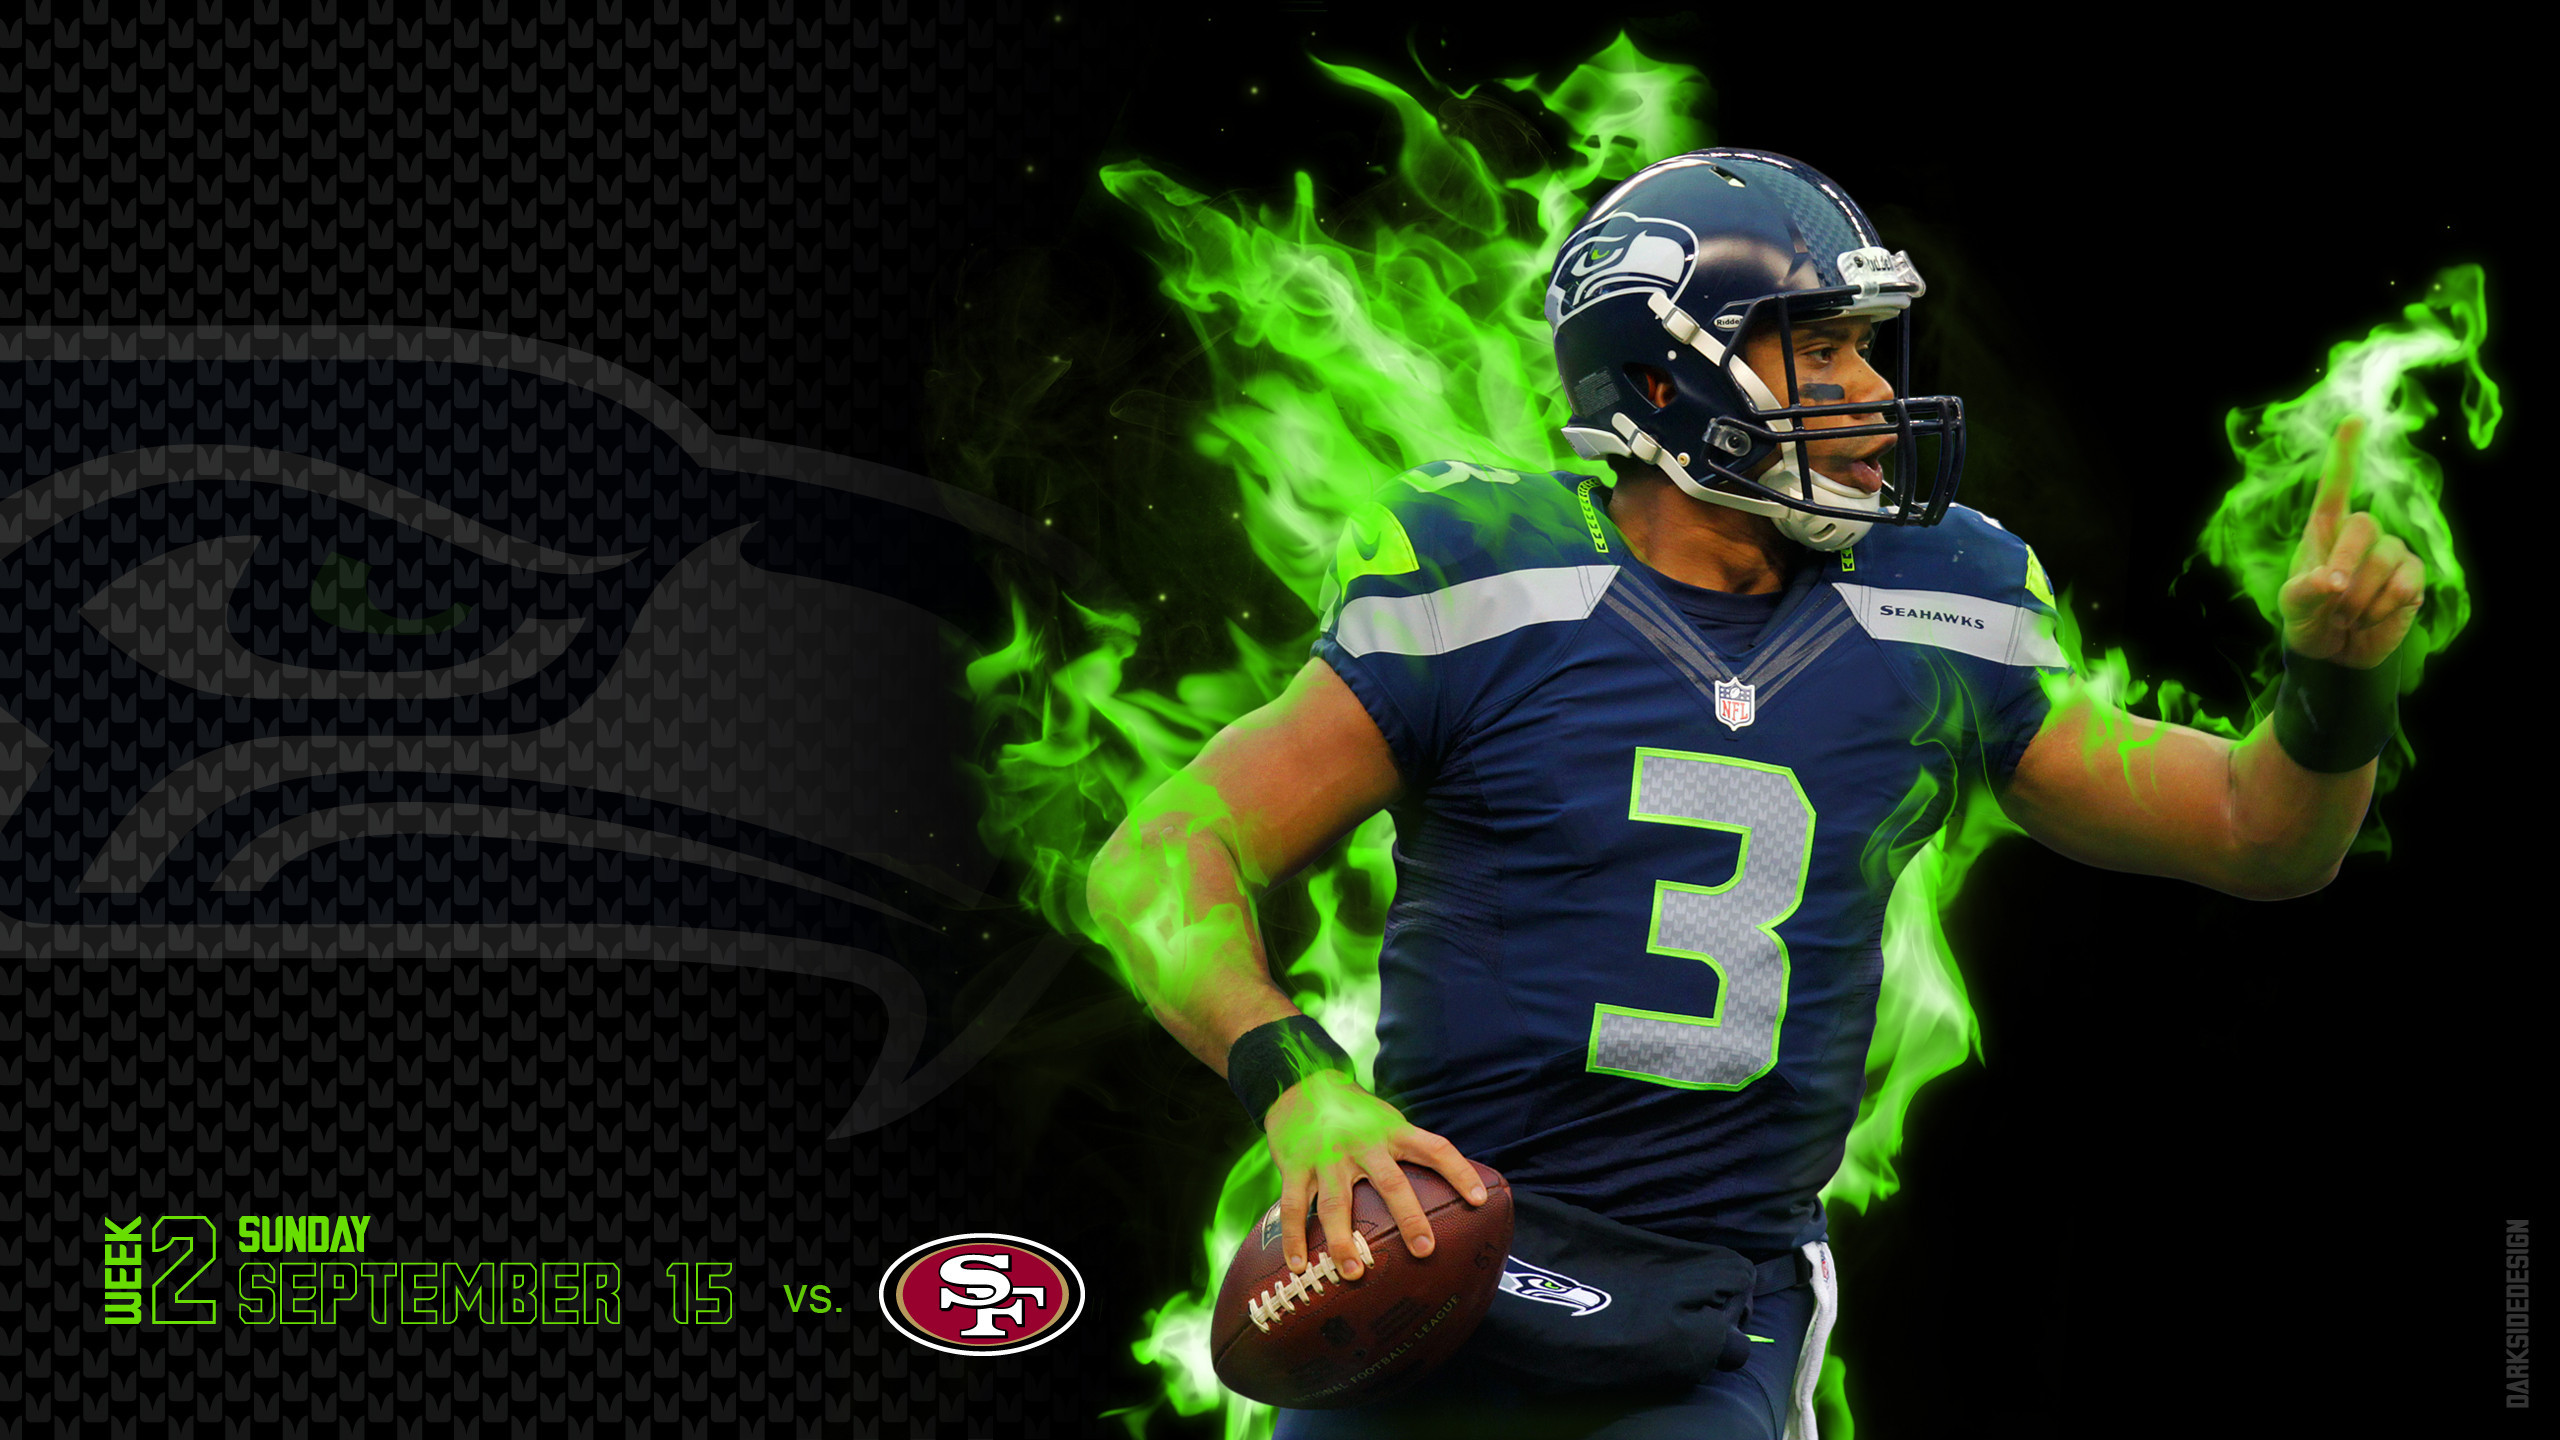 2560x1440 Seattle Seahawk Background Desktop.